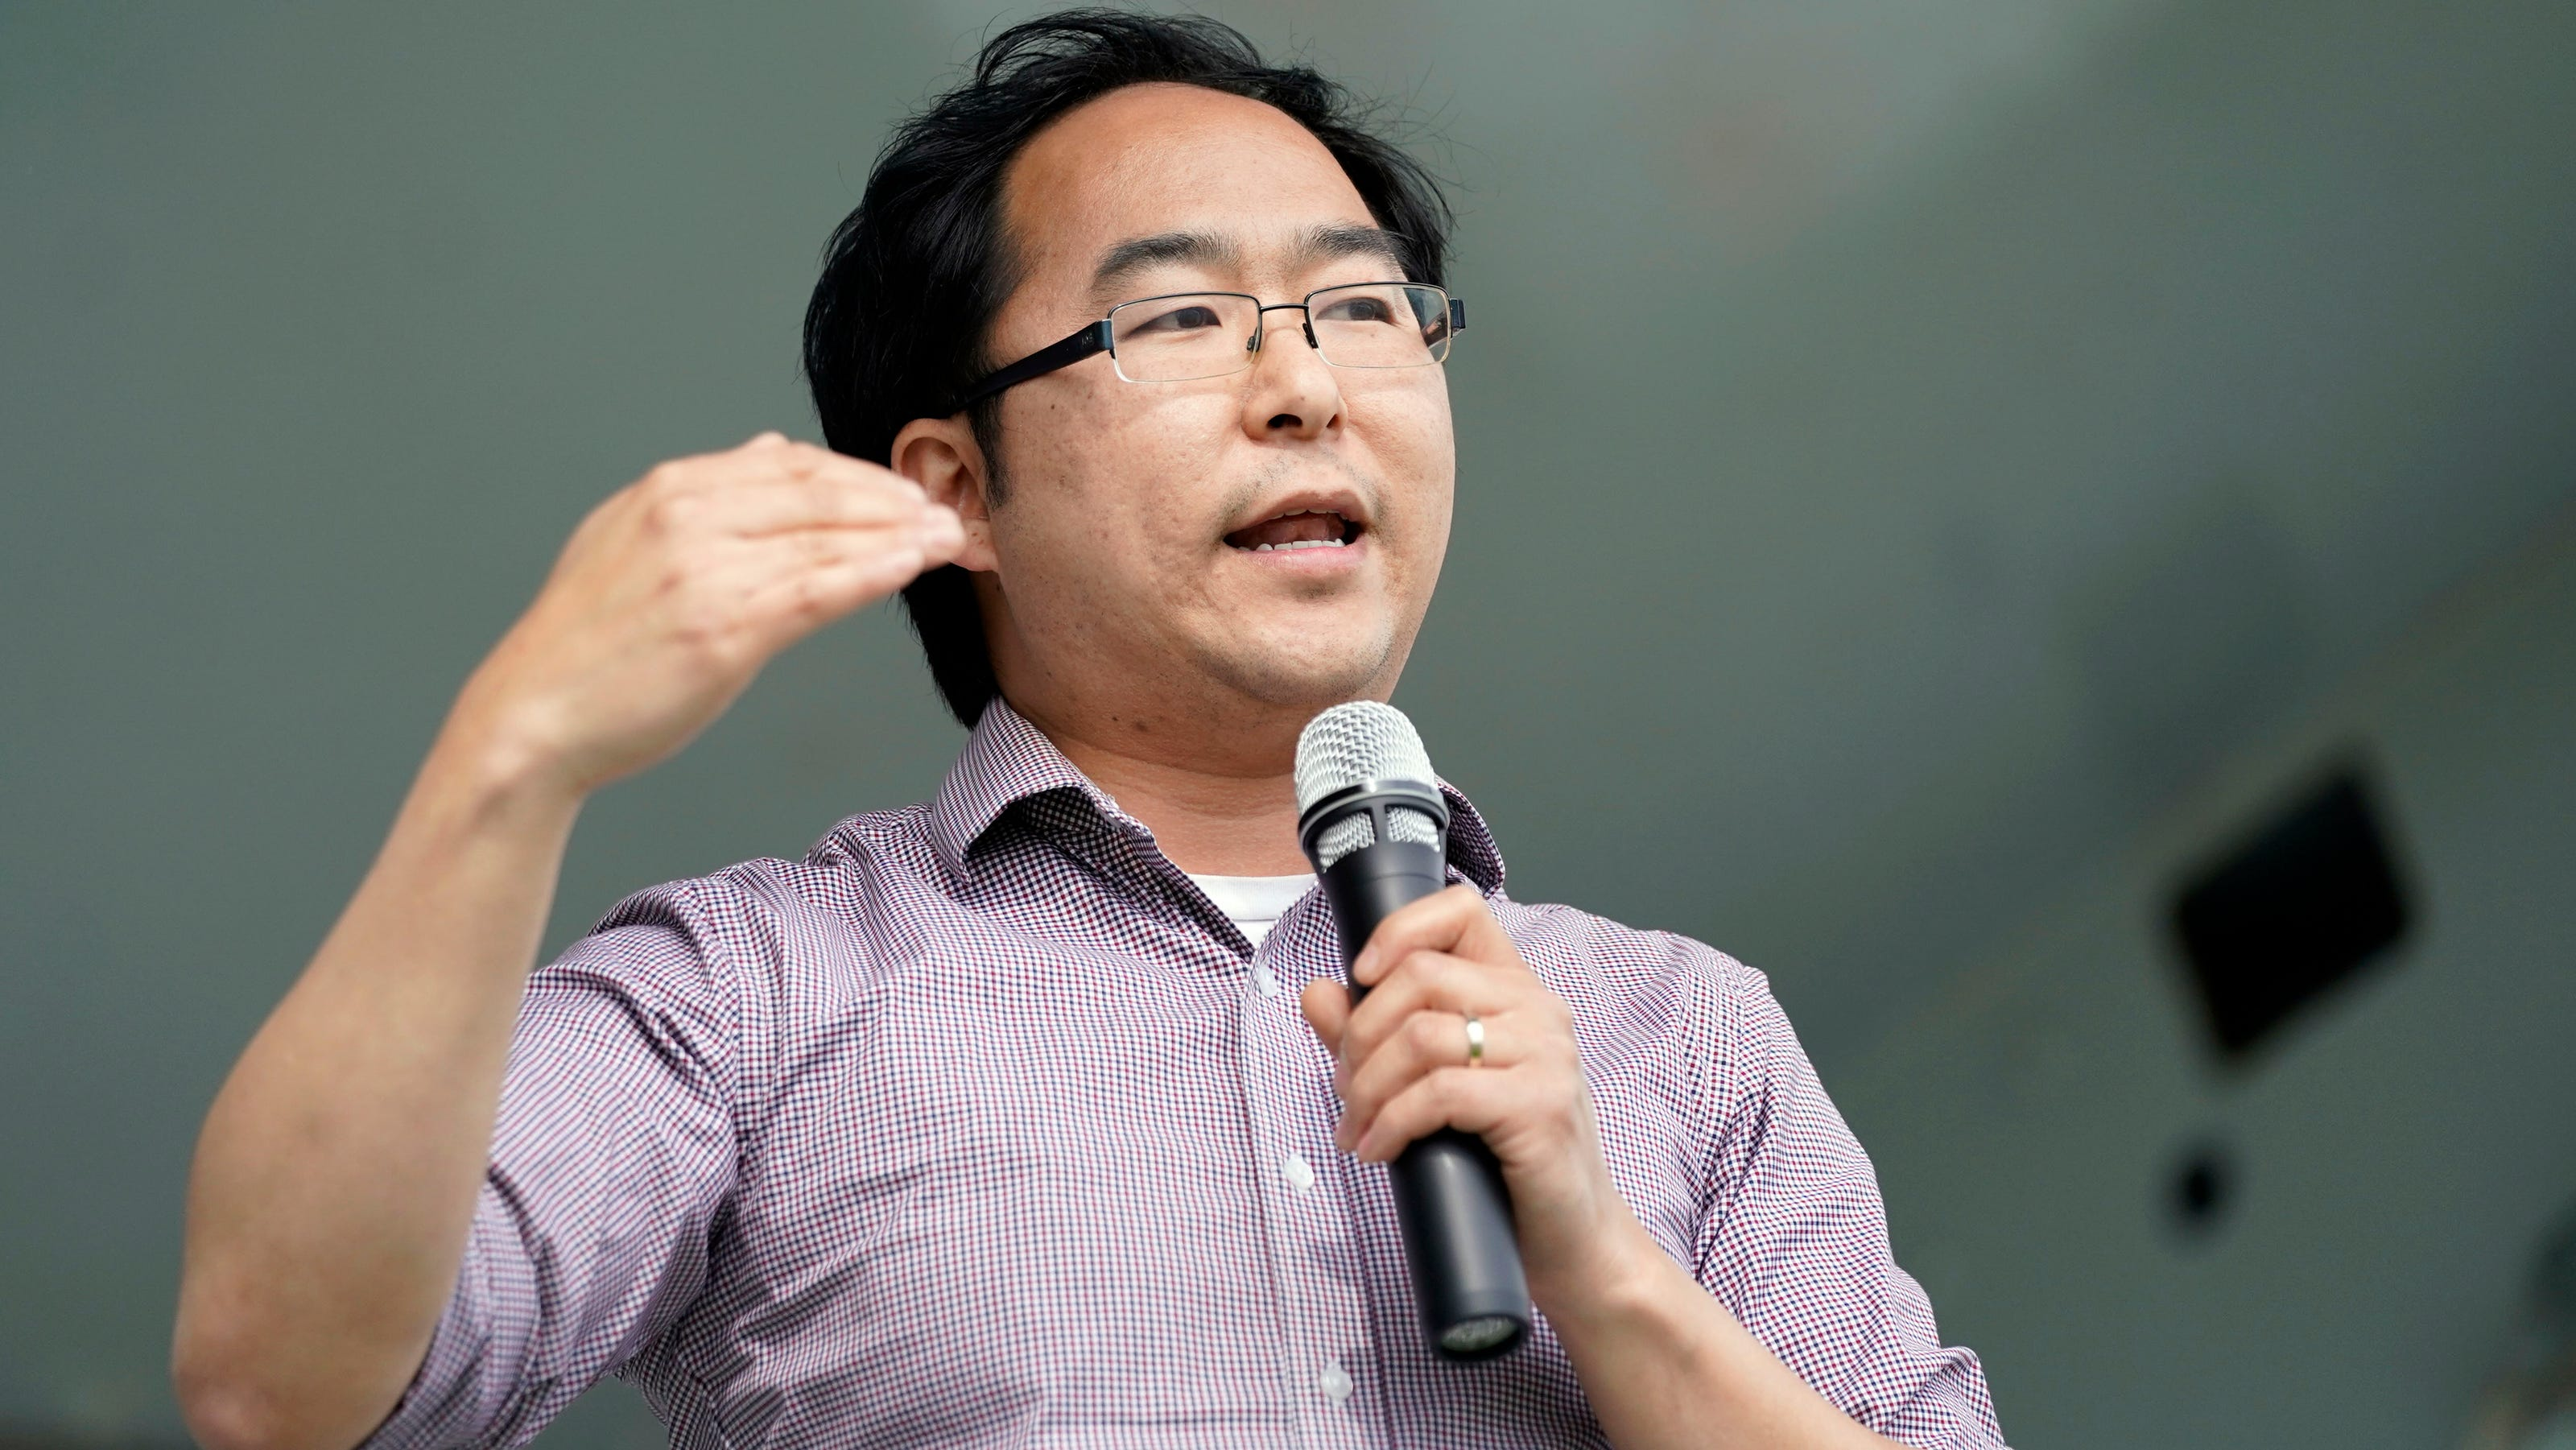 www.northjersey.com: 'Not one of us': Congressman Andy Kim responds to video by potential GOP challenger